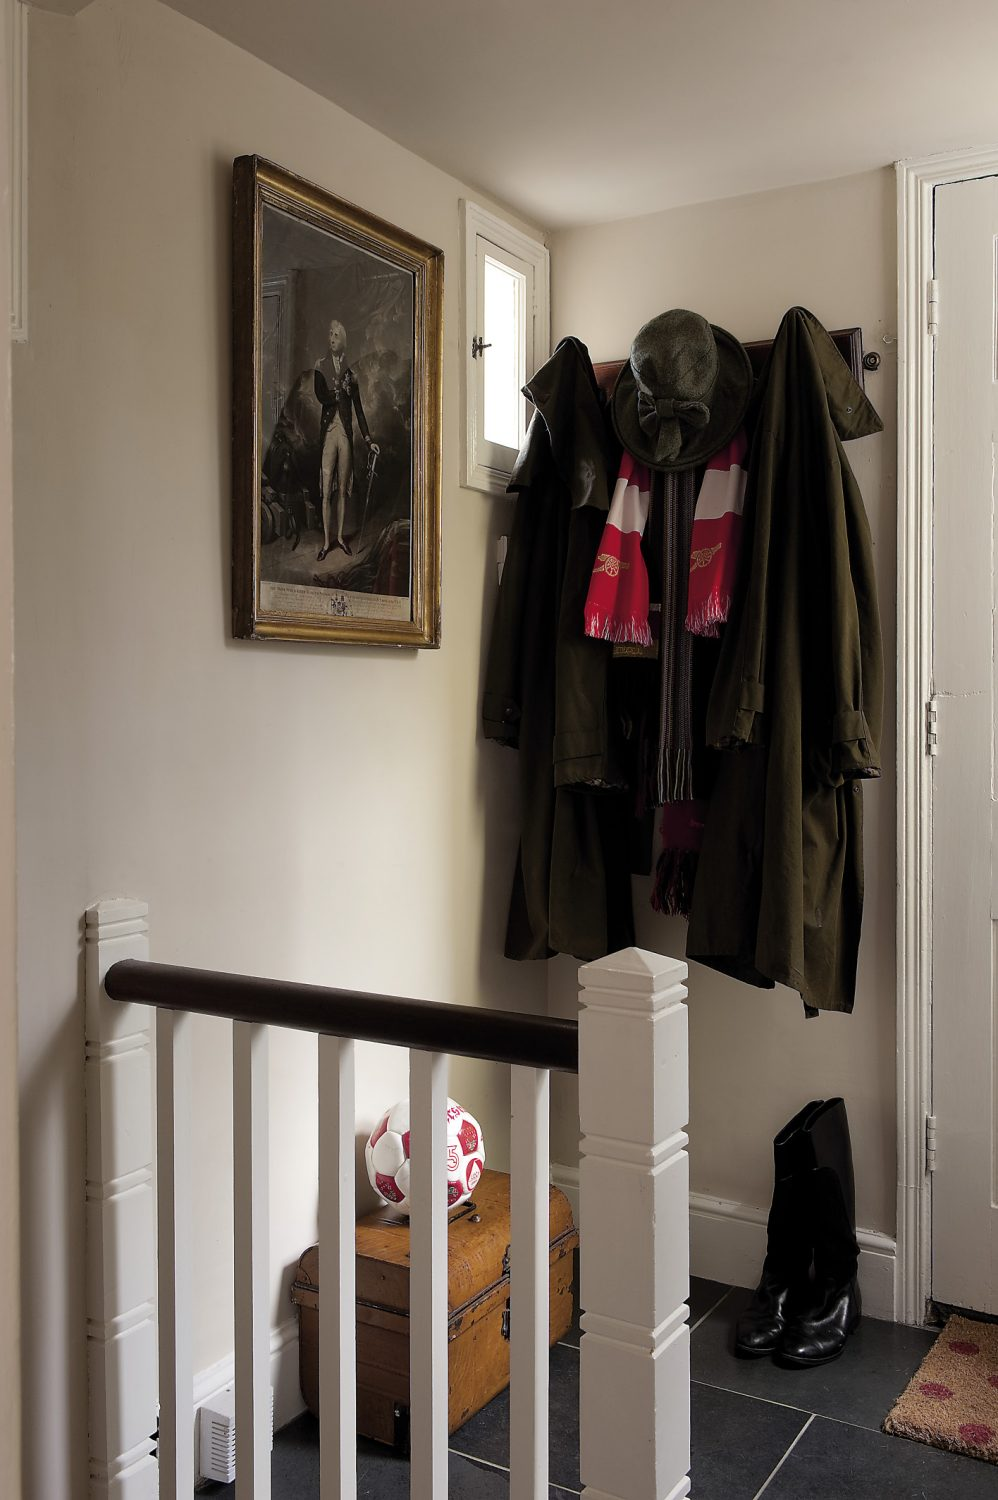 On entering through the front door, you arrive on the first floor of the house's five levels